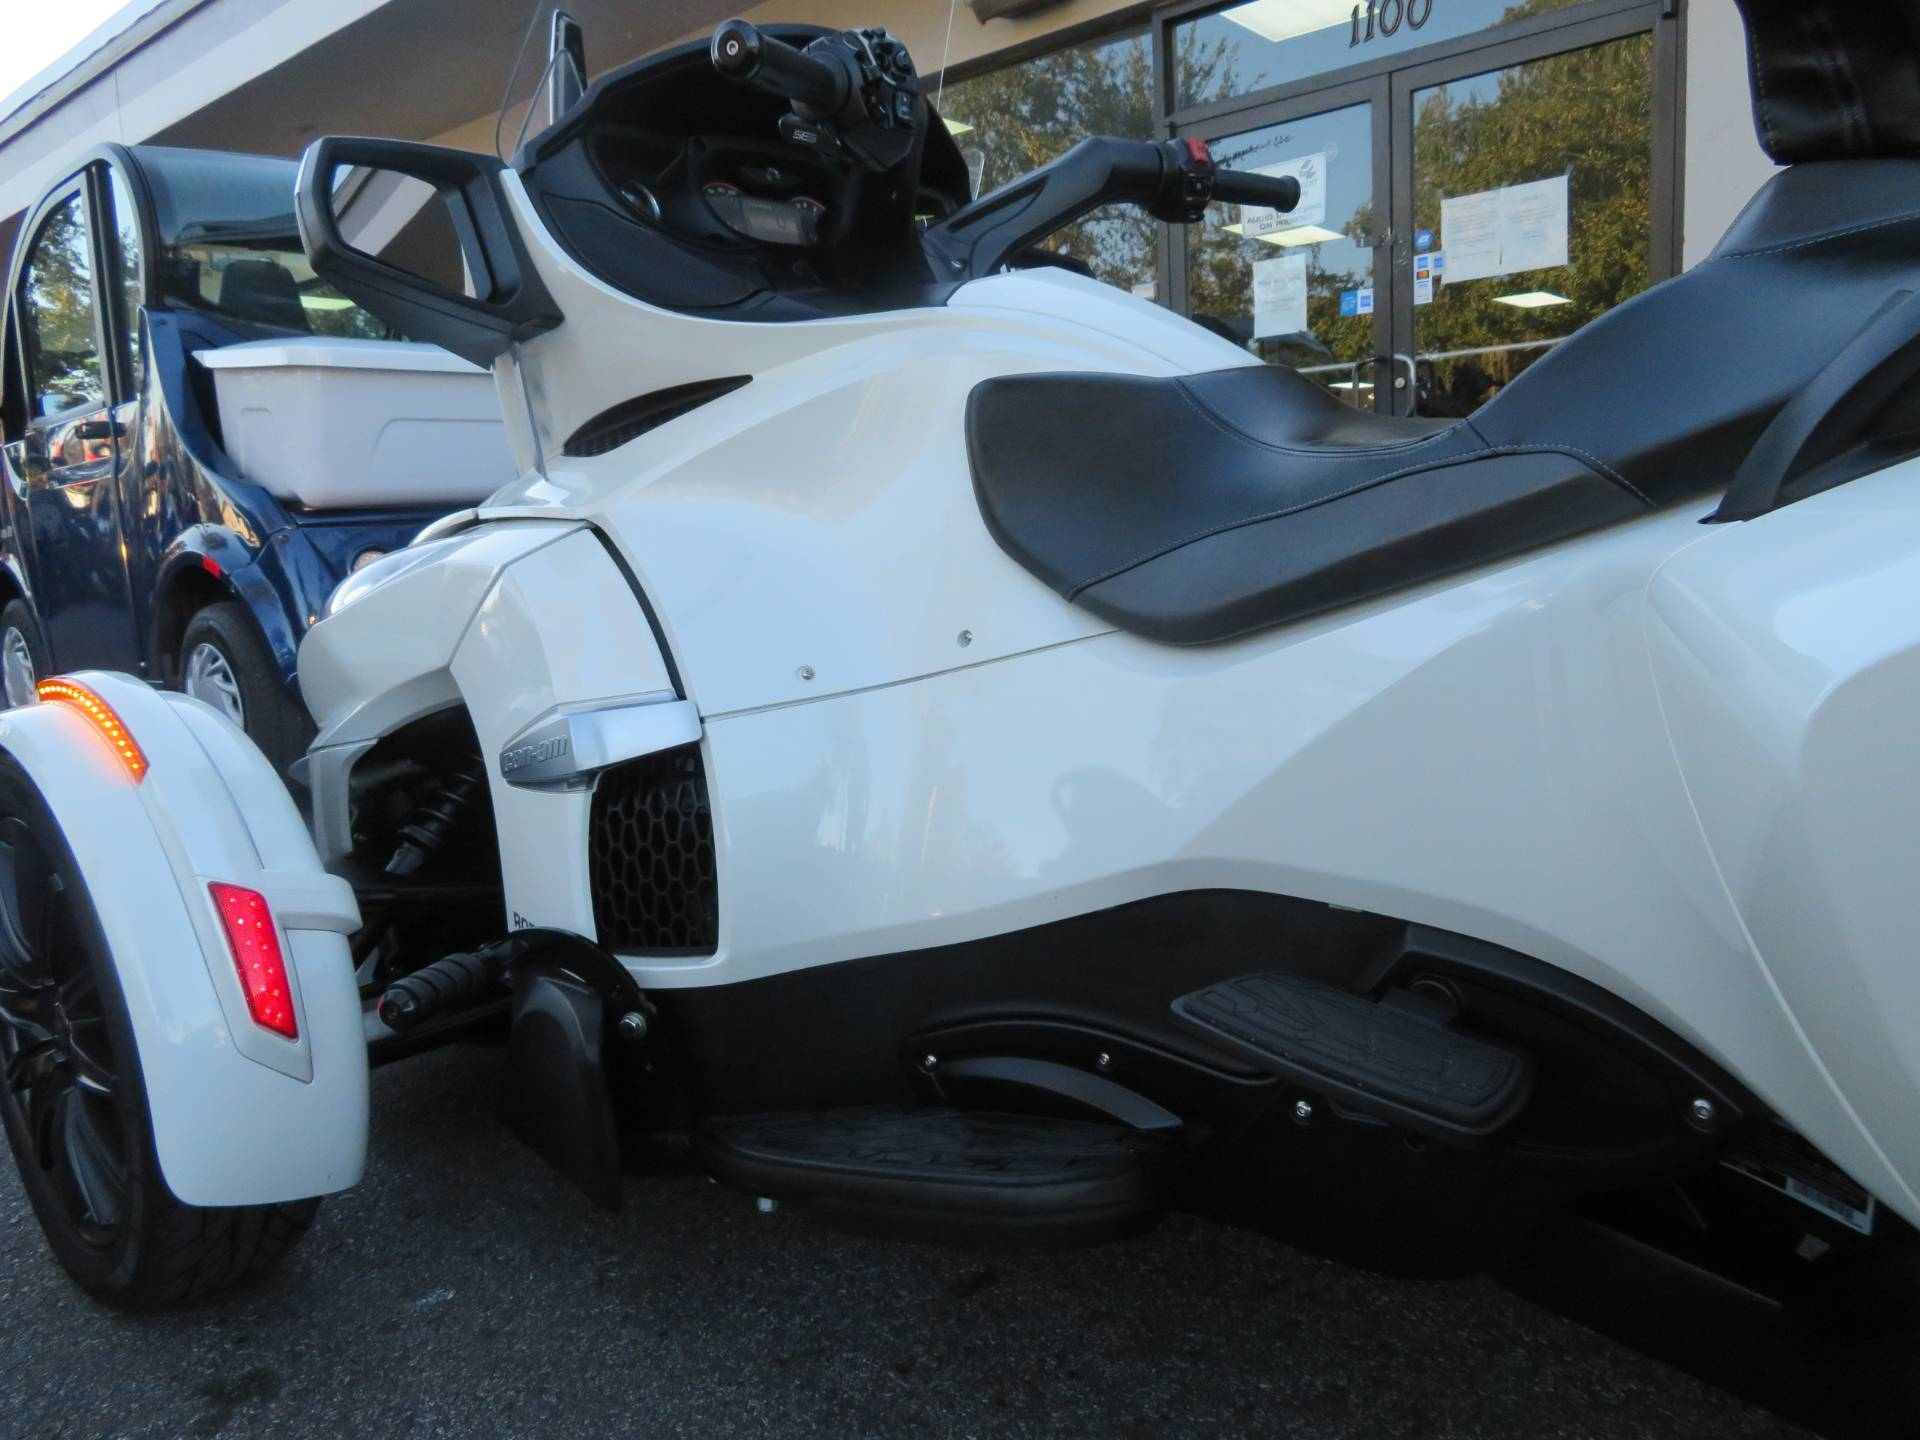 2016 Can-Am Spyder RT-S SE6 in Sanford, Florida - Photo 20